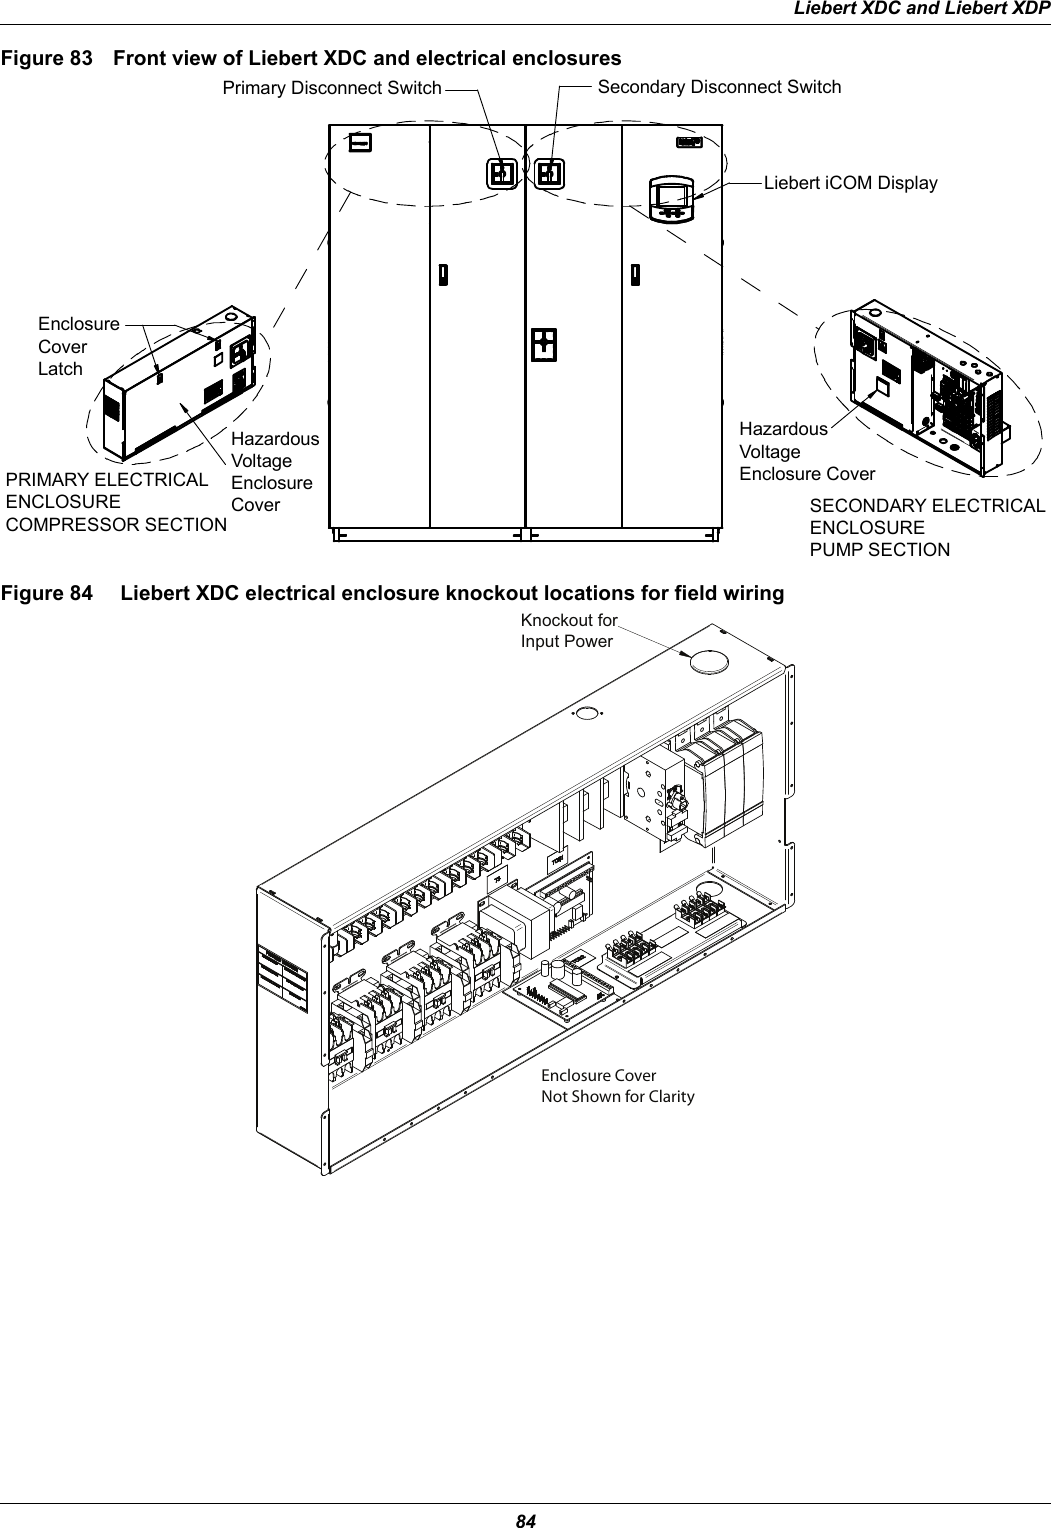 Liebert sitelink e emerson network mississippi on map of usa easy liebert icom wiring diagram wiring small block wire diagram emersonliebertxdpipingsystemflexiblepipingforliebertxdsystemtechnicalspecifications680395 asfbconference2016 Images